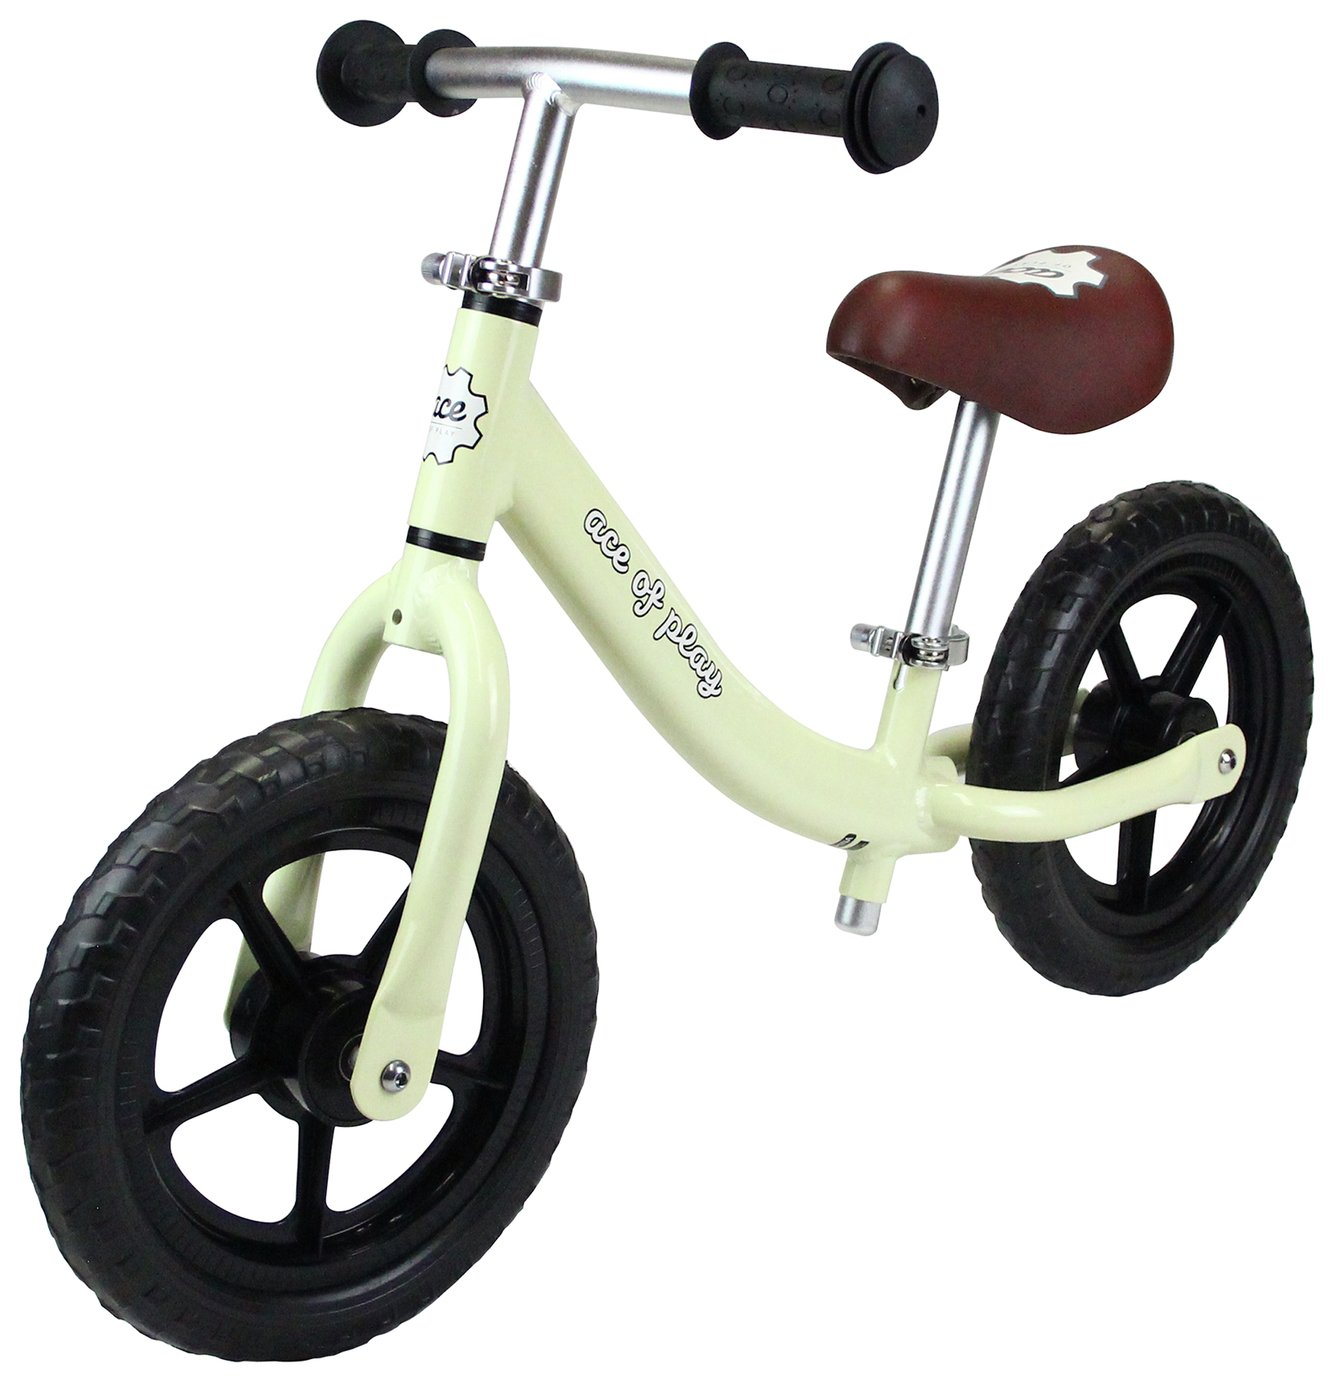 Image of Ace of Play Balance Bike - Vanilla.